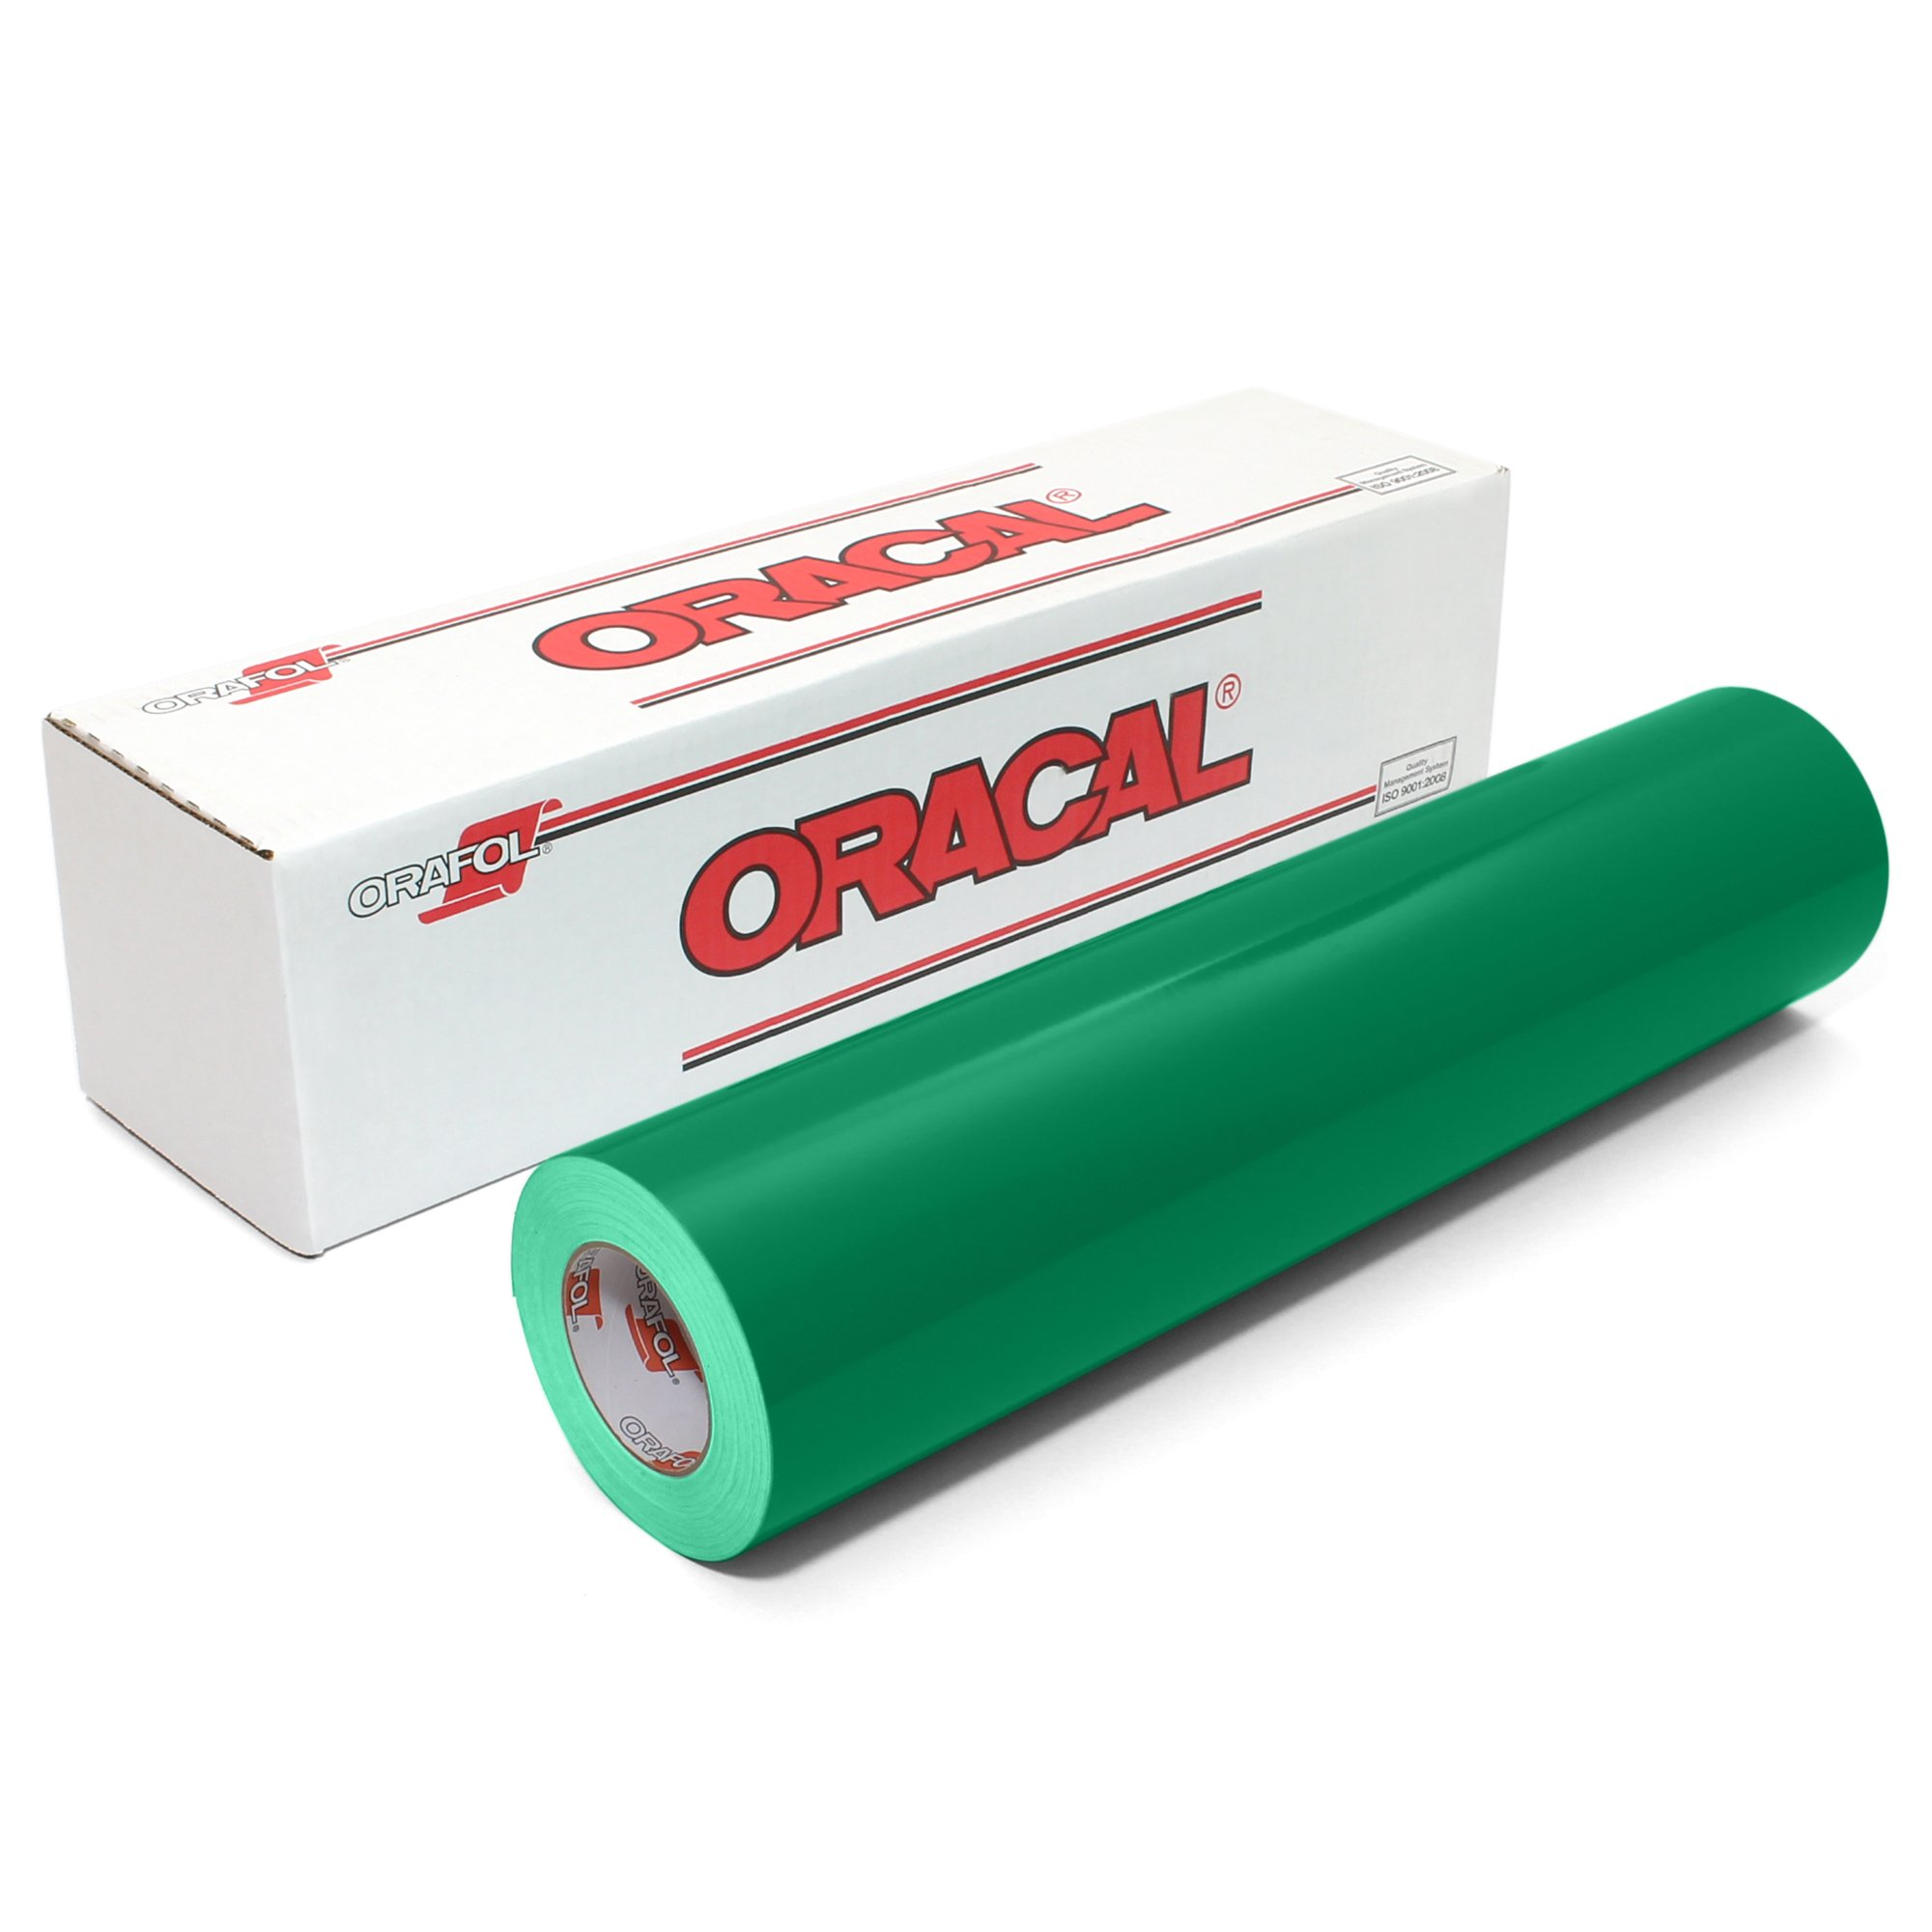 """Oracal 651 Glossy 12"""" x 6 Foot Vinyl Rolls - 61 Color"""